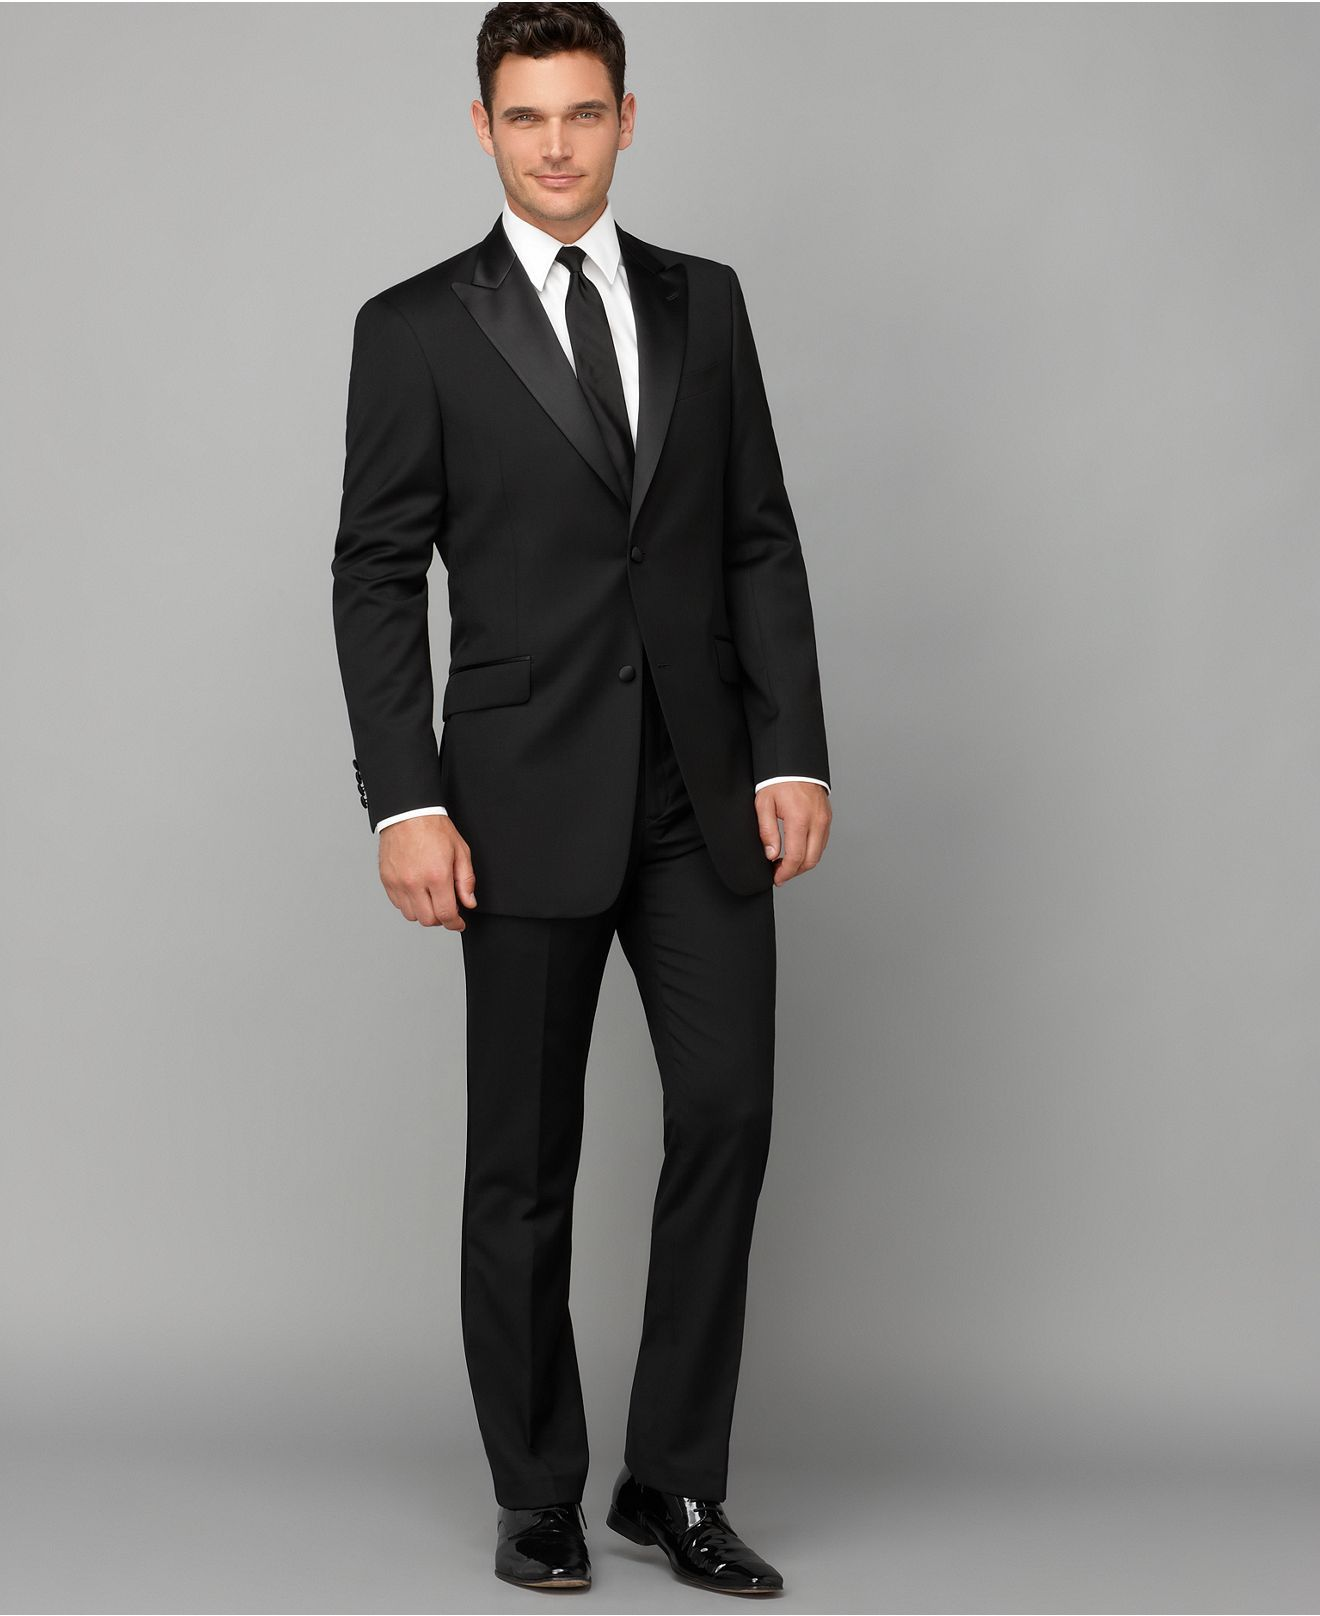 3e4ee16c9516 Give your formal wear a more modern look with these slim tuxedo pants and  jacket from Tommy Hilfiger.